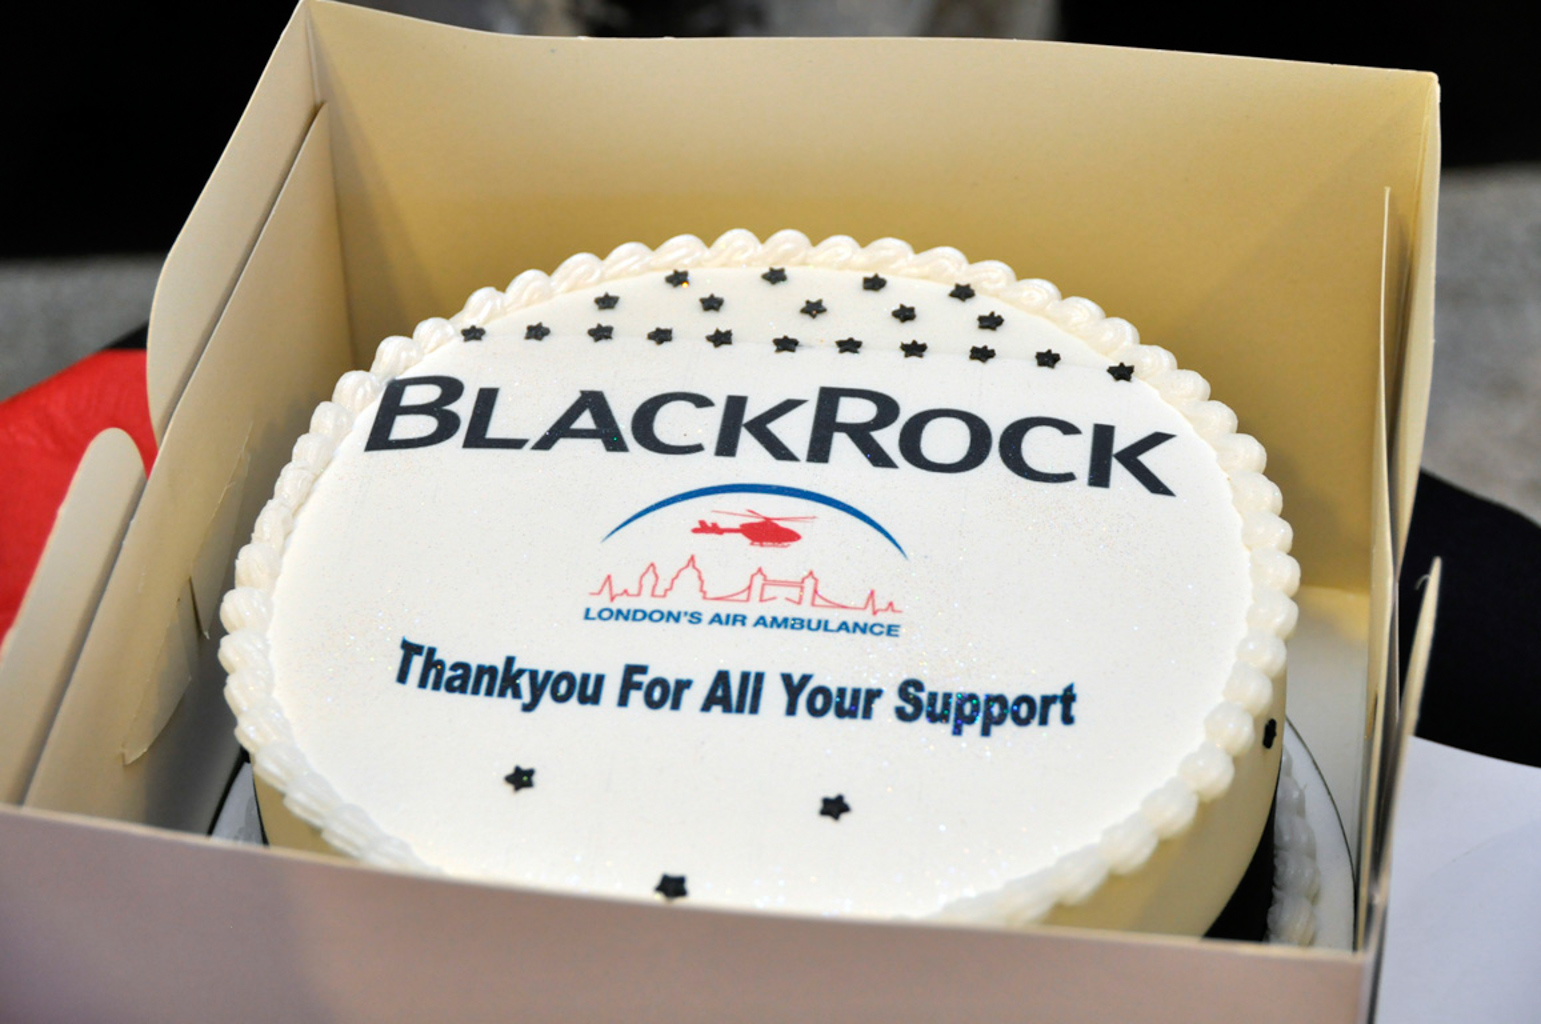 BlackRock's charity of the year. London's Air Ambulance